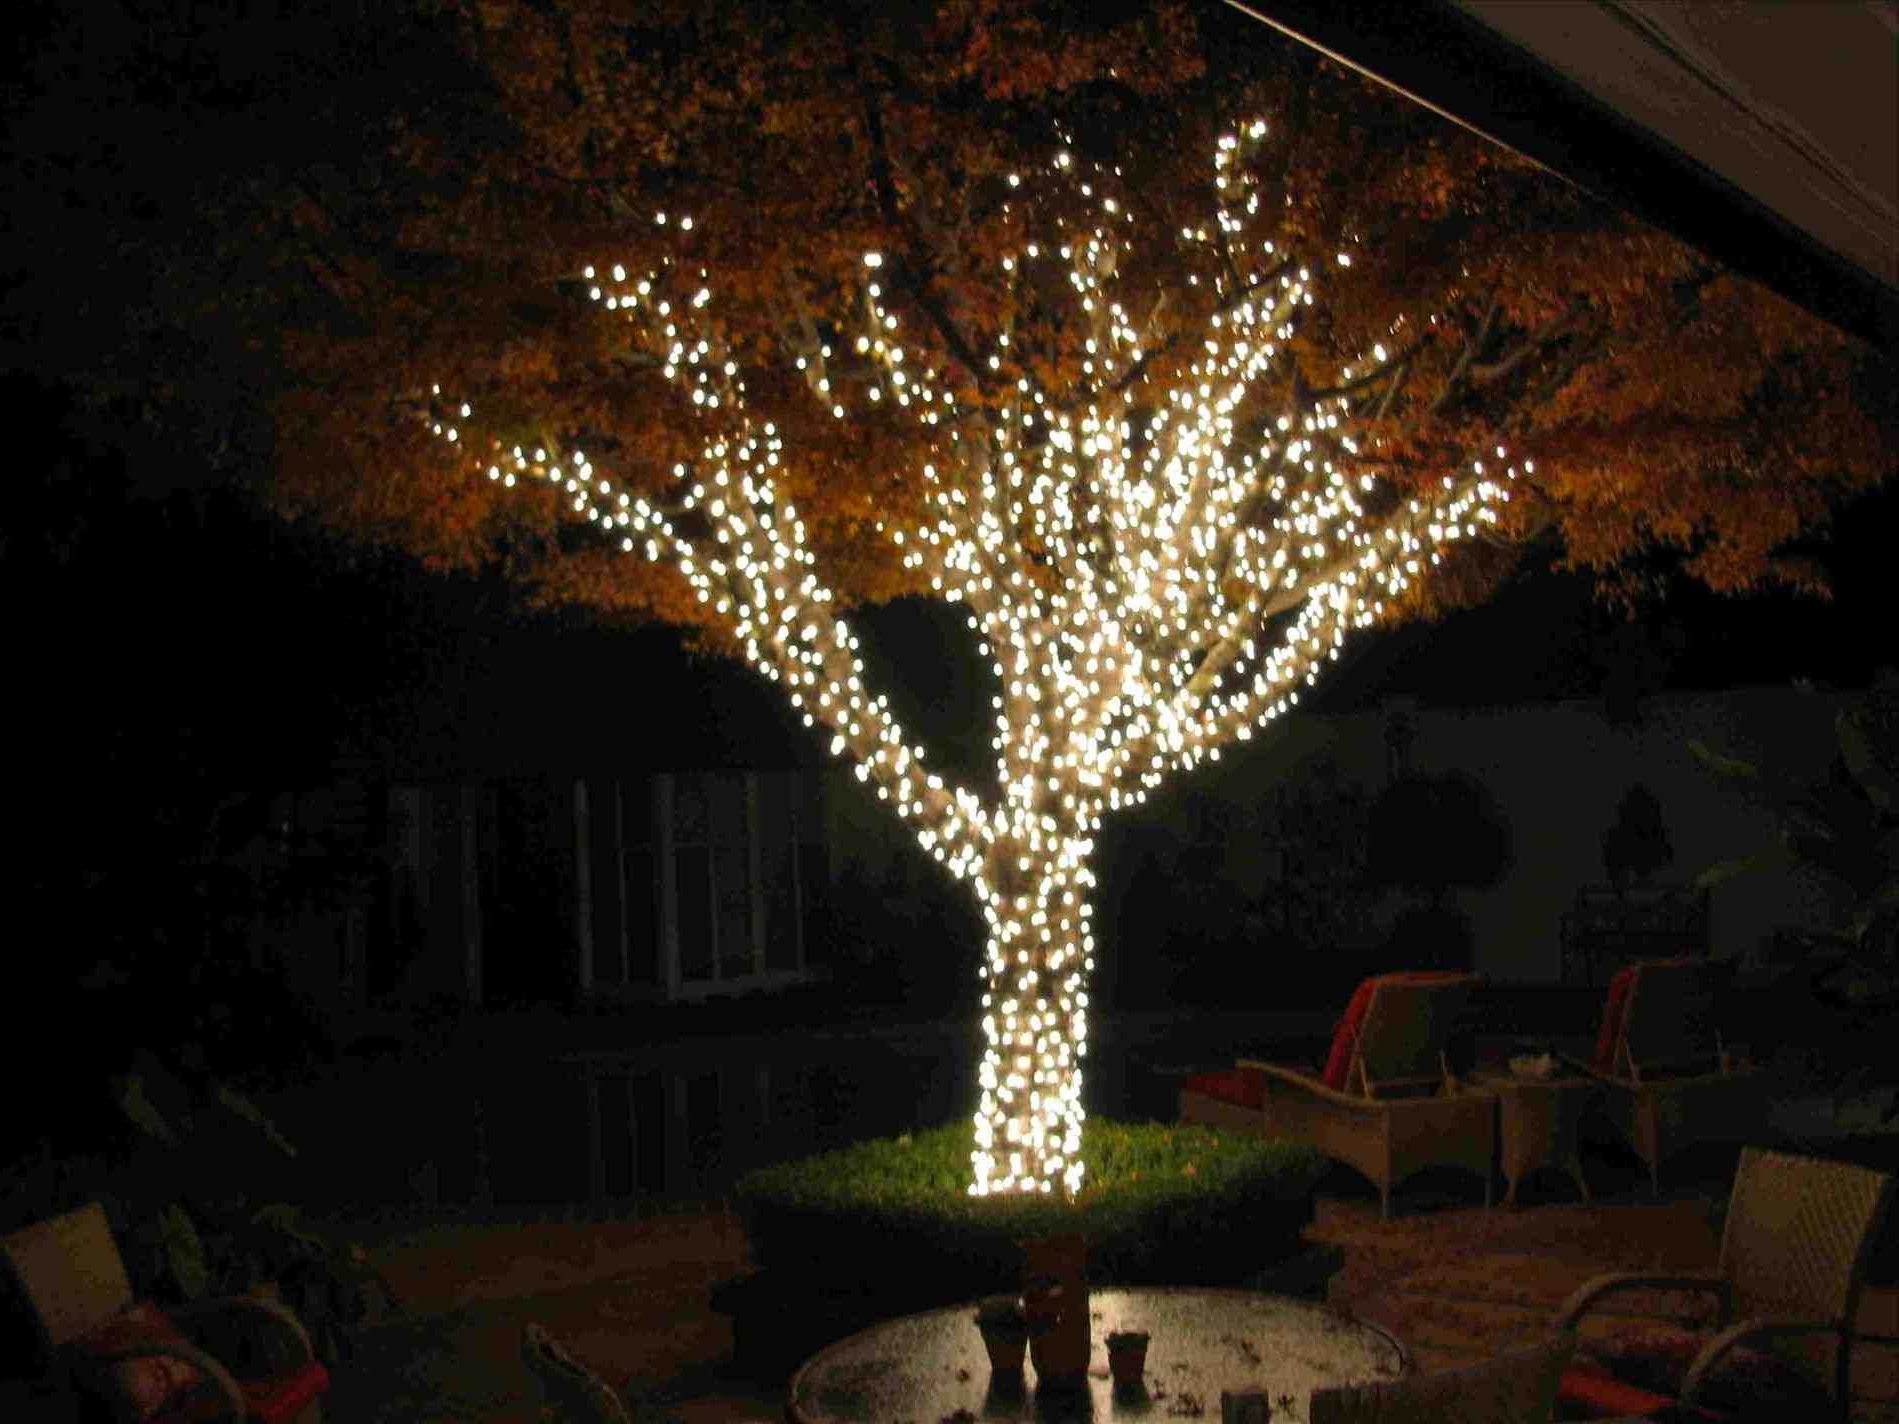 Outdoor Tree Lighting Ideas Throughout Hanging Lights On An Outdoor Tree Intended For Well Liked Backyard Lighting Ideas Homedesignlatest 20 Of